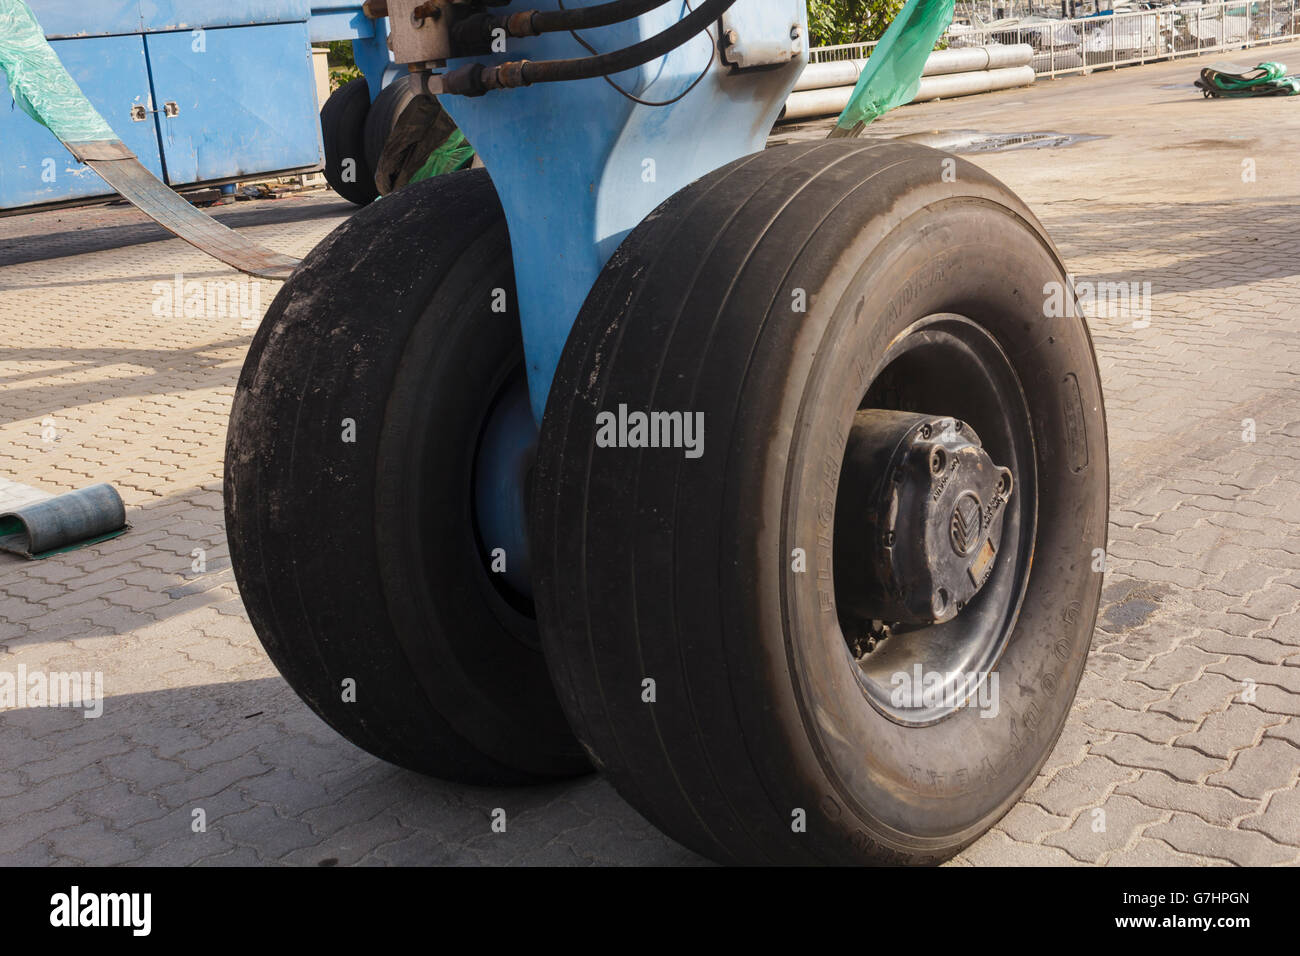 Tires of a giant lifting machine. - Stock Image